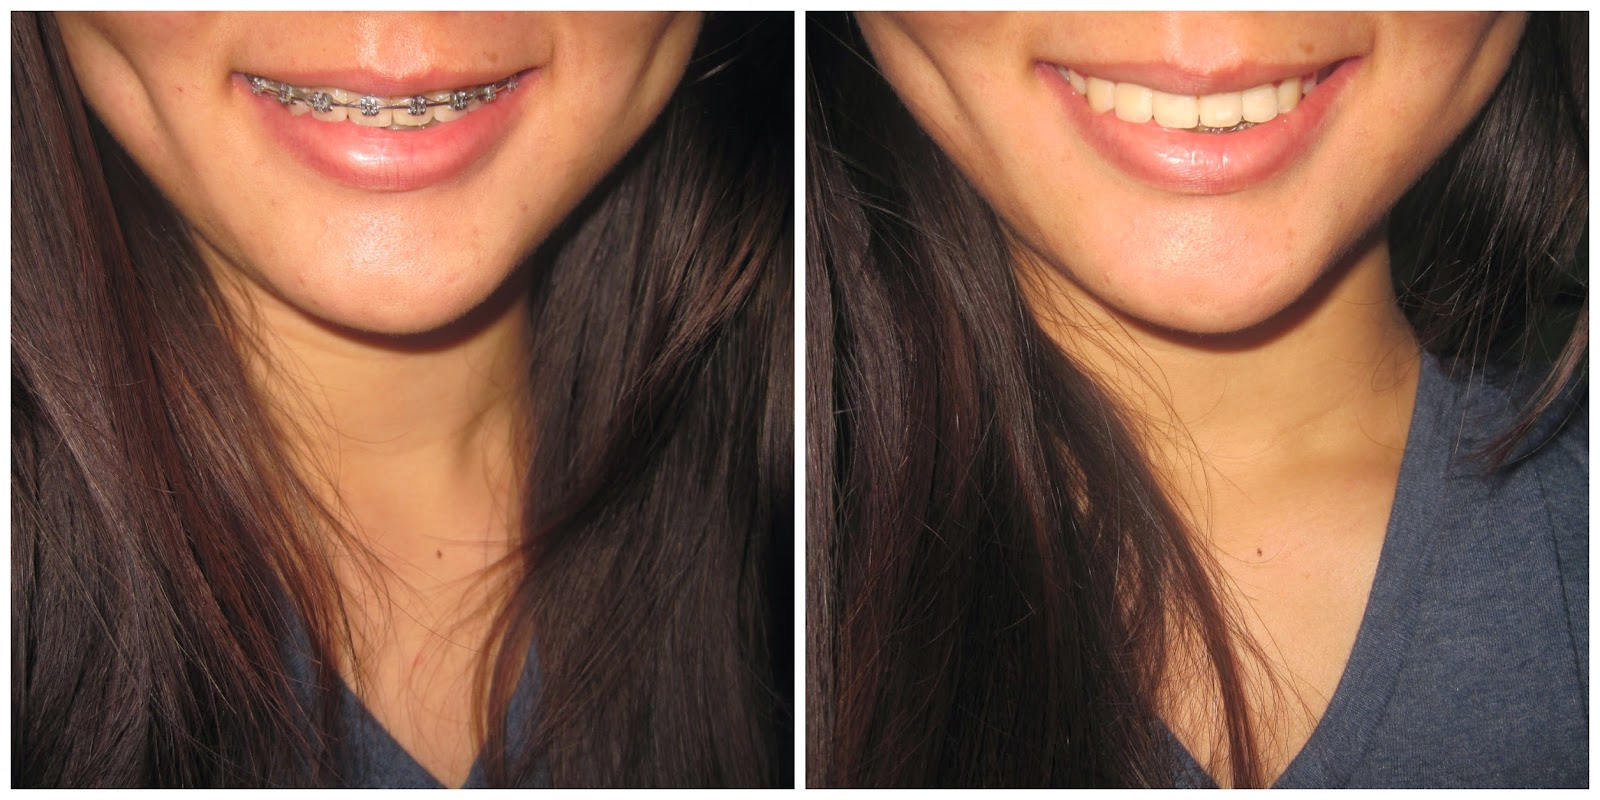 To Flawless: Braces Review (before and after)